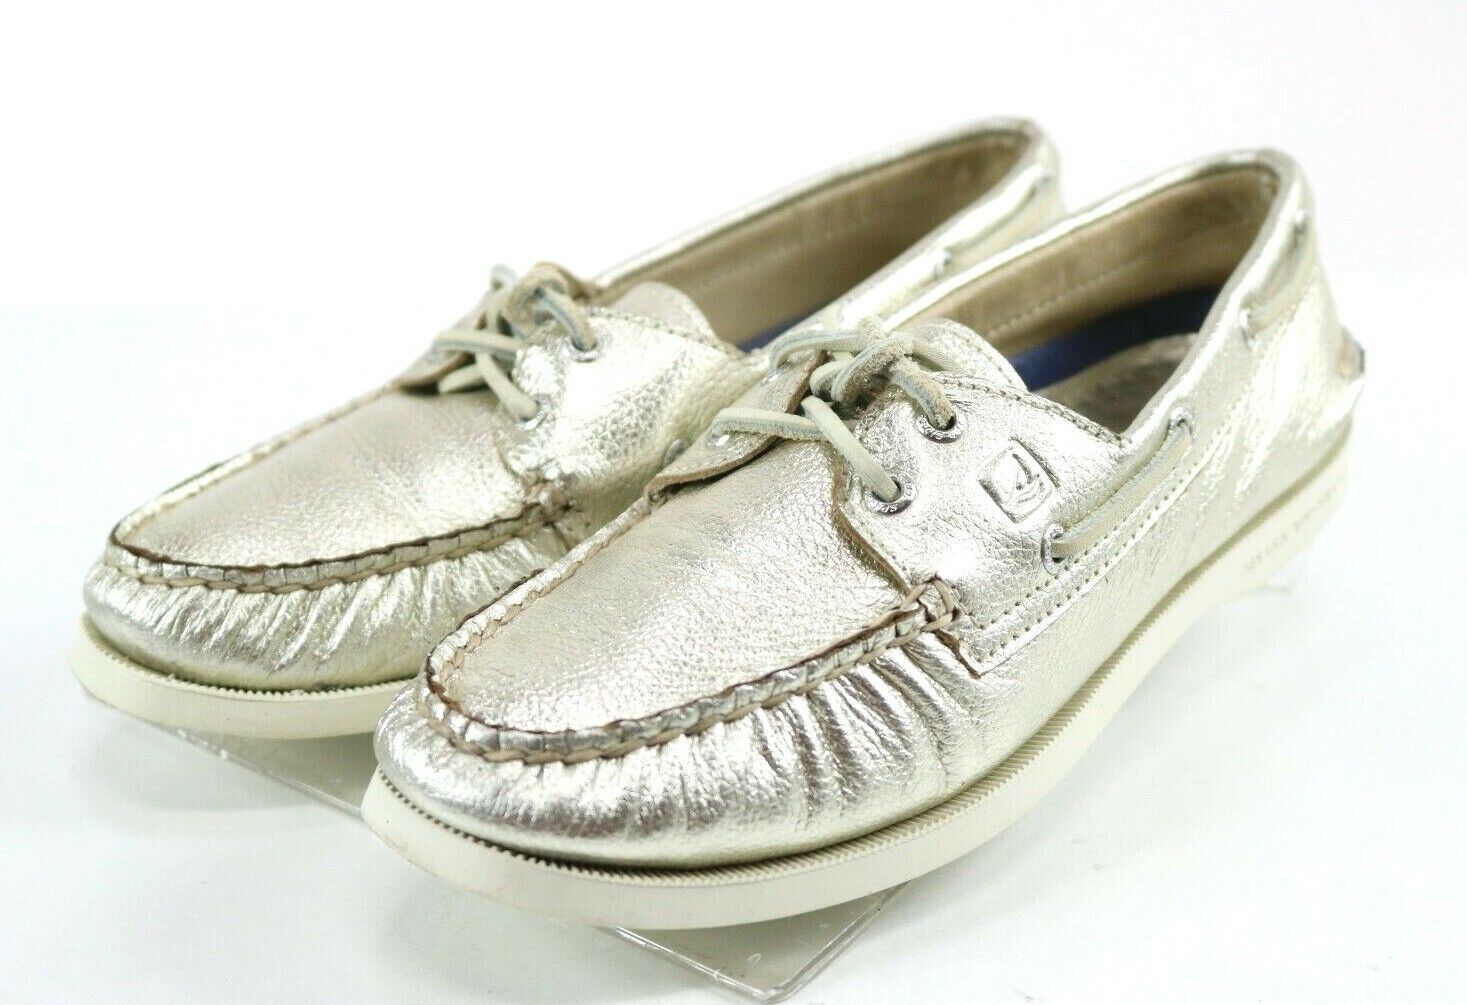 Sperry Top-Sider Authentic Original Women's Boat Shoes Size 8 Metallic Gold